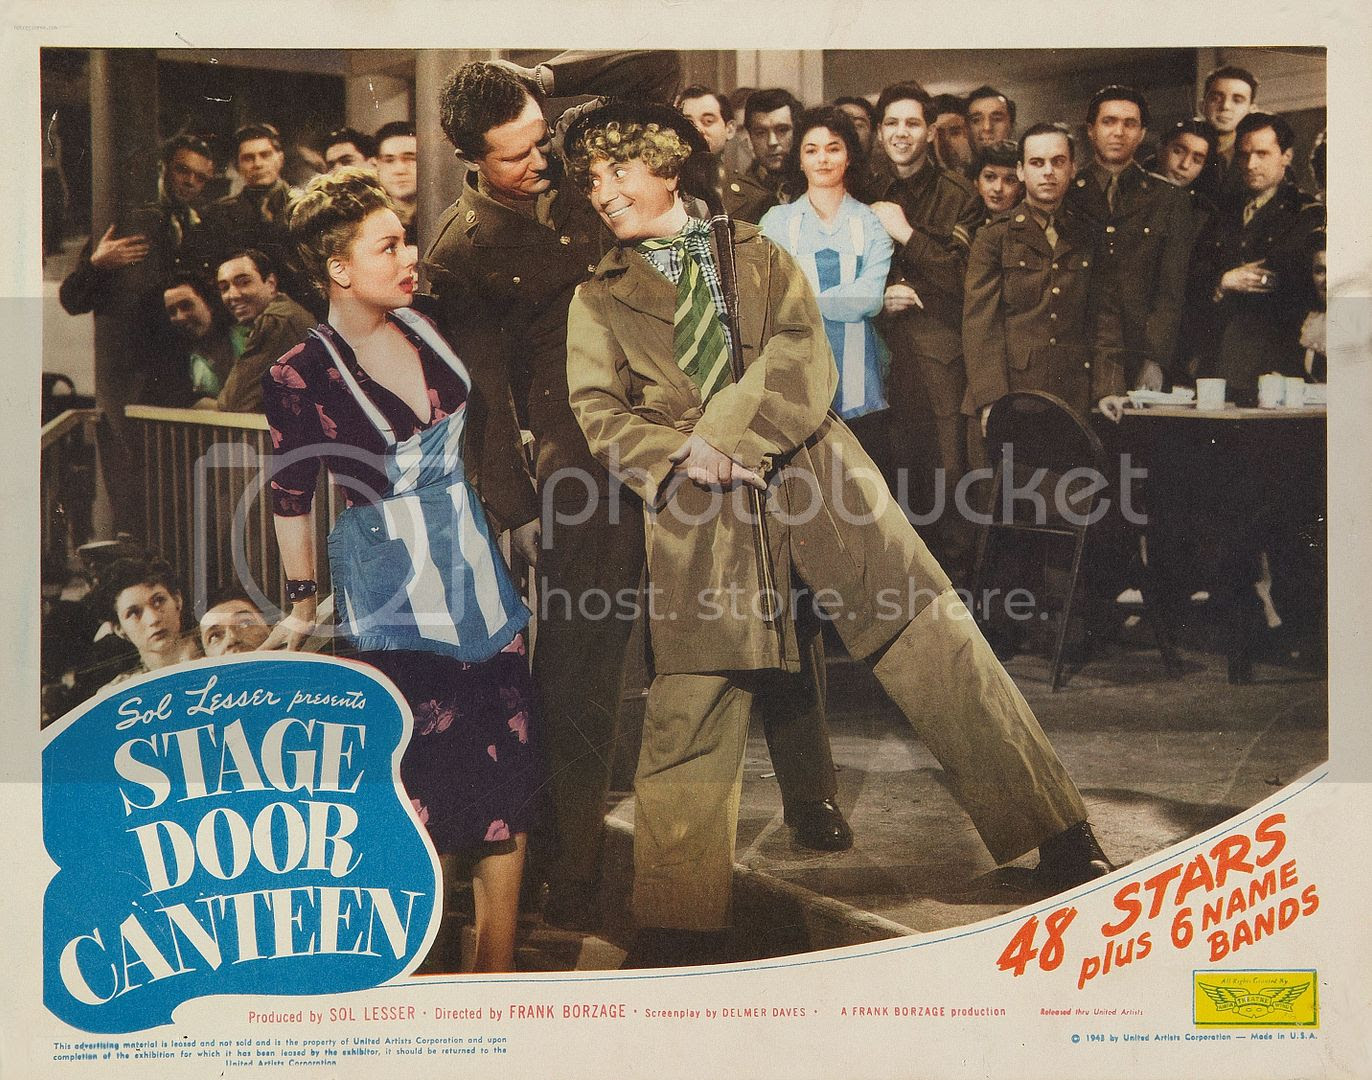 photo poster_stage_door_canteen-3.jpg